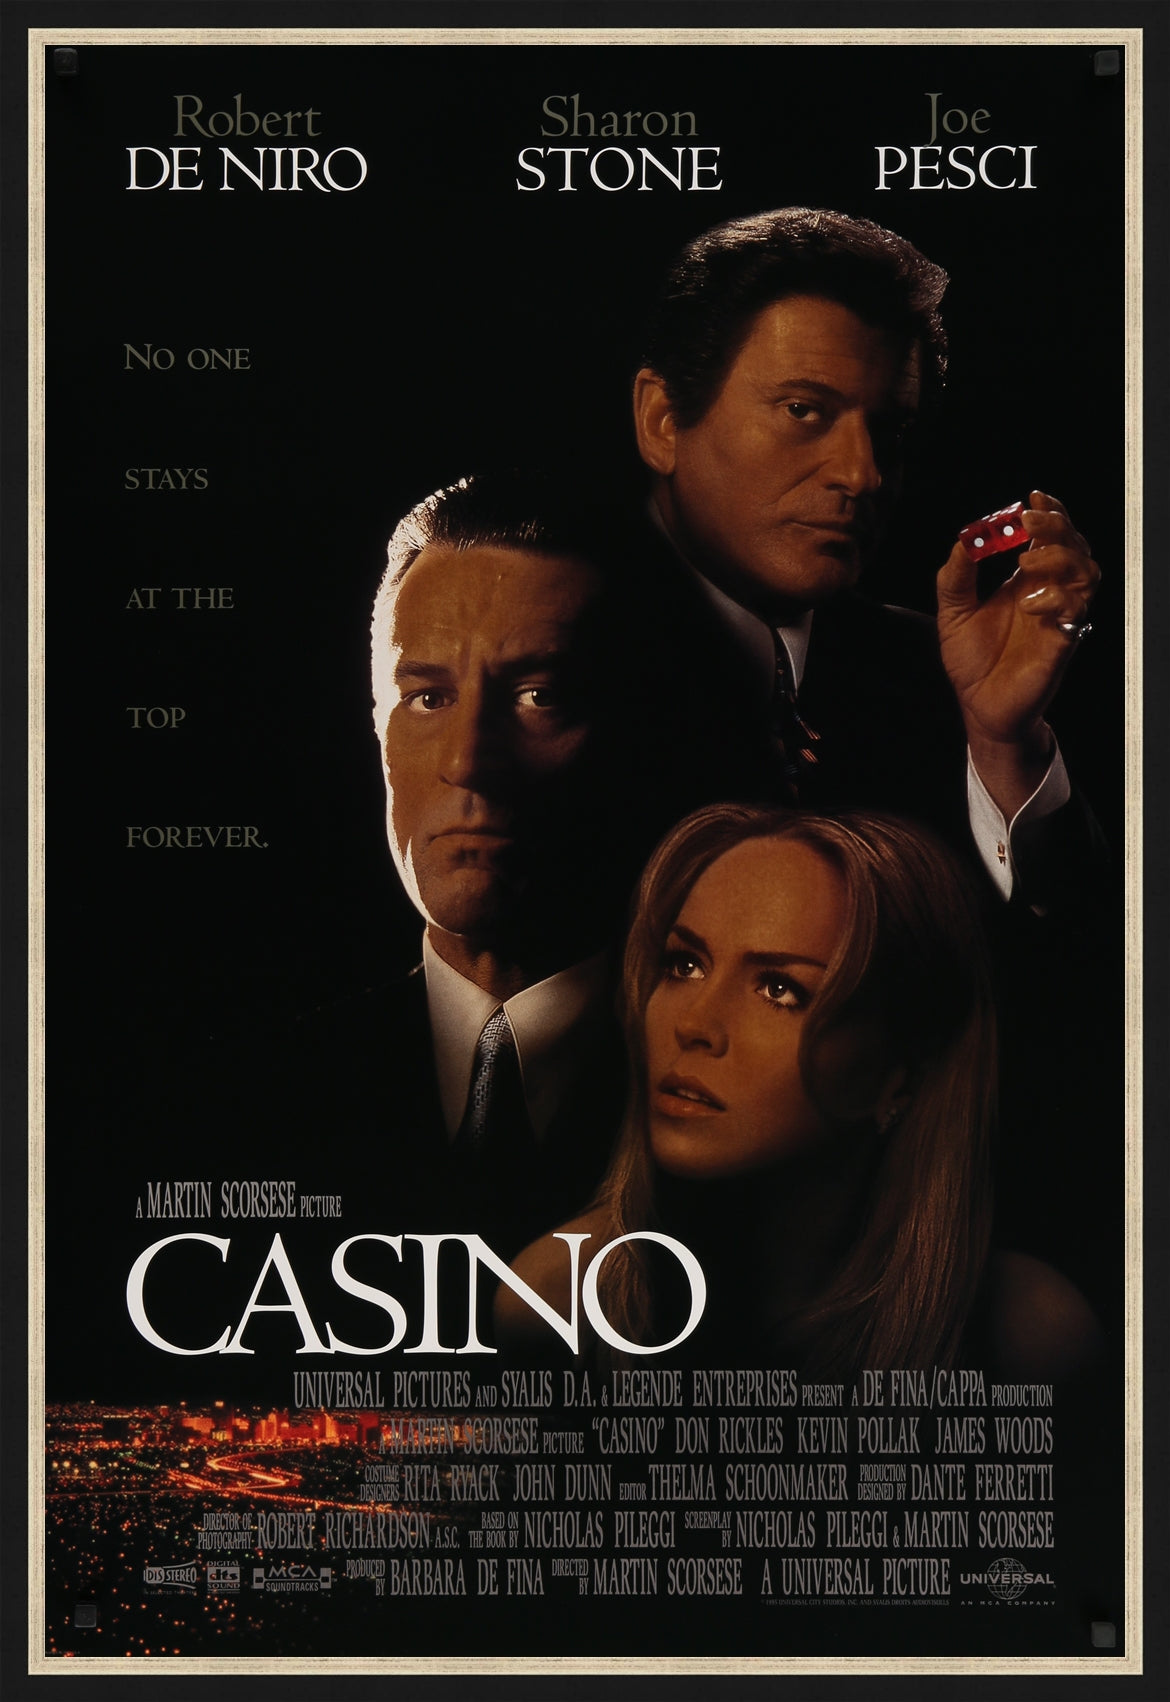 An original movie poster for the Martin Scorsese film Casino